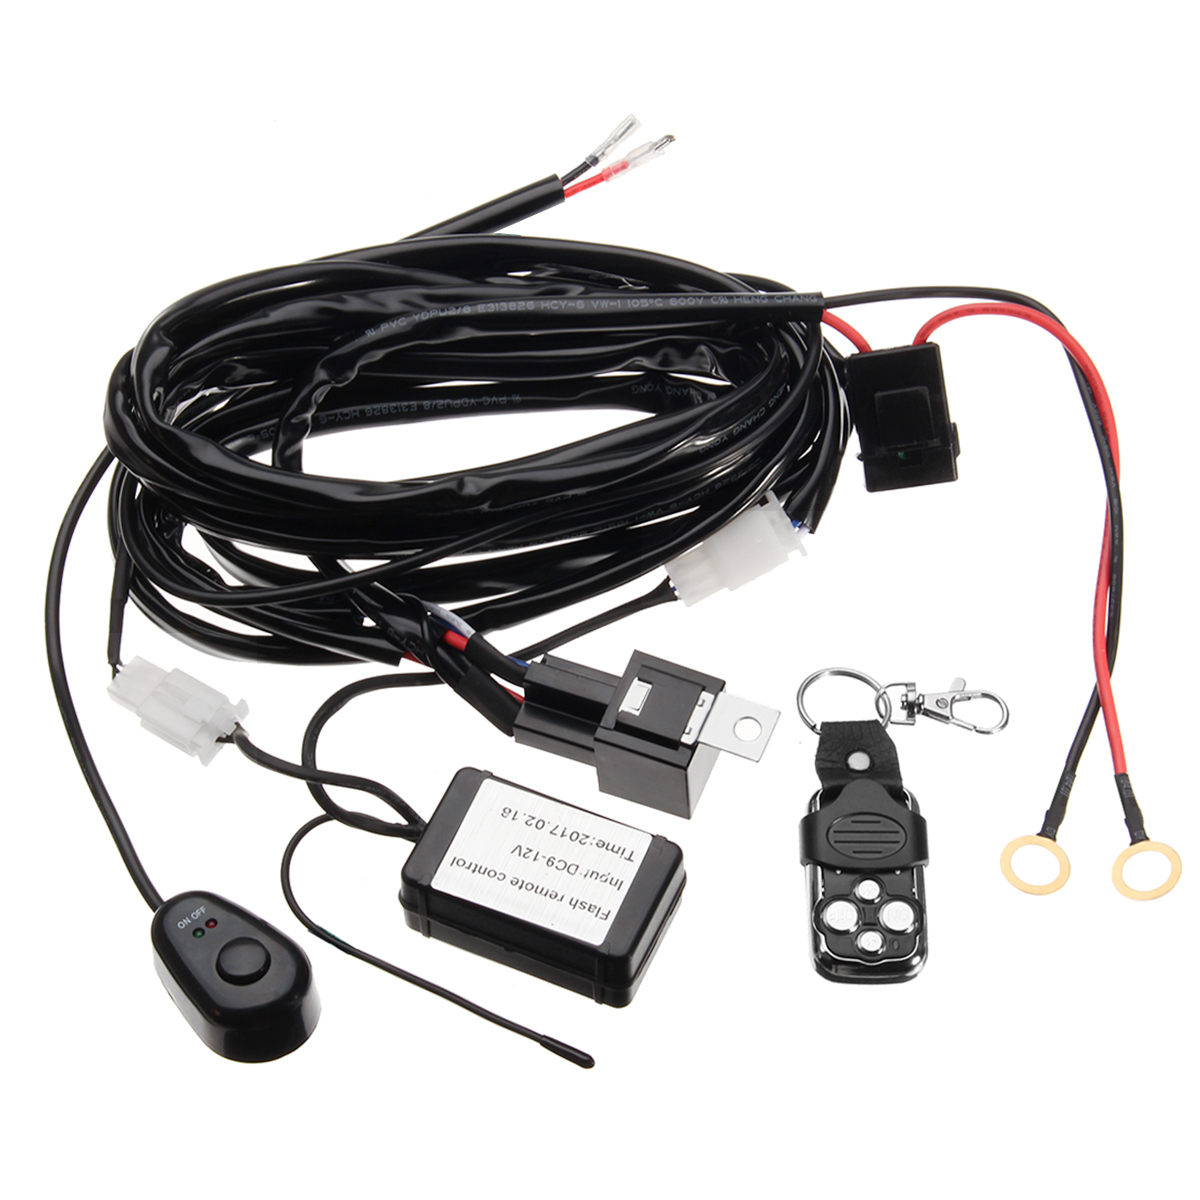 12v Wiring Kit With Wireless Remote Control Transmitter For Led Light Bar Atv Suv 2lead